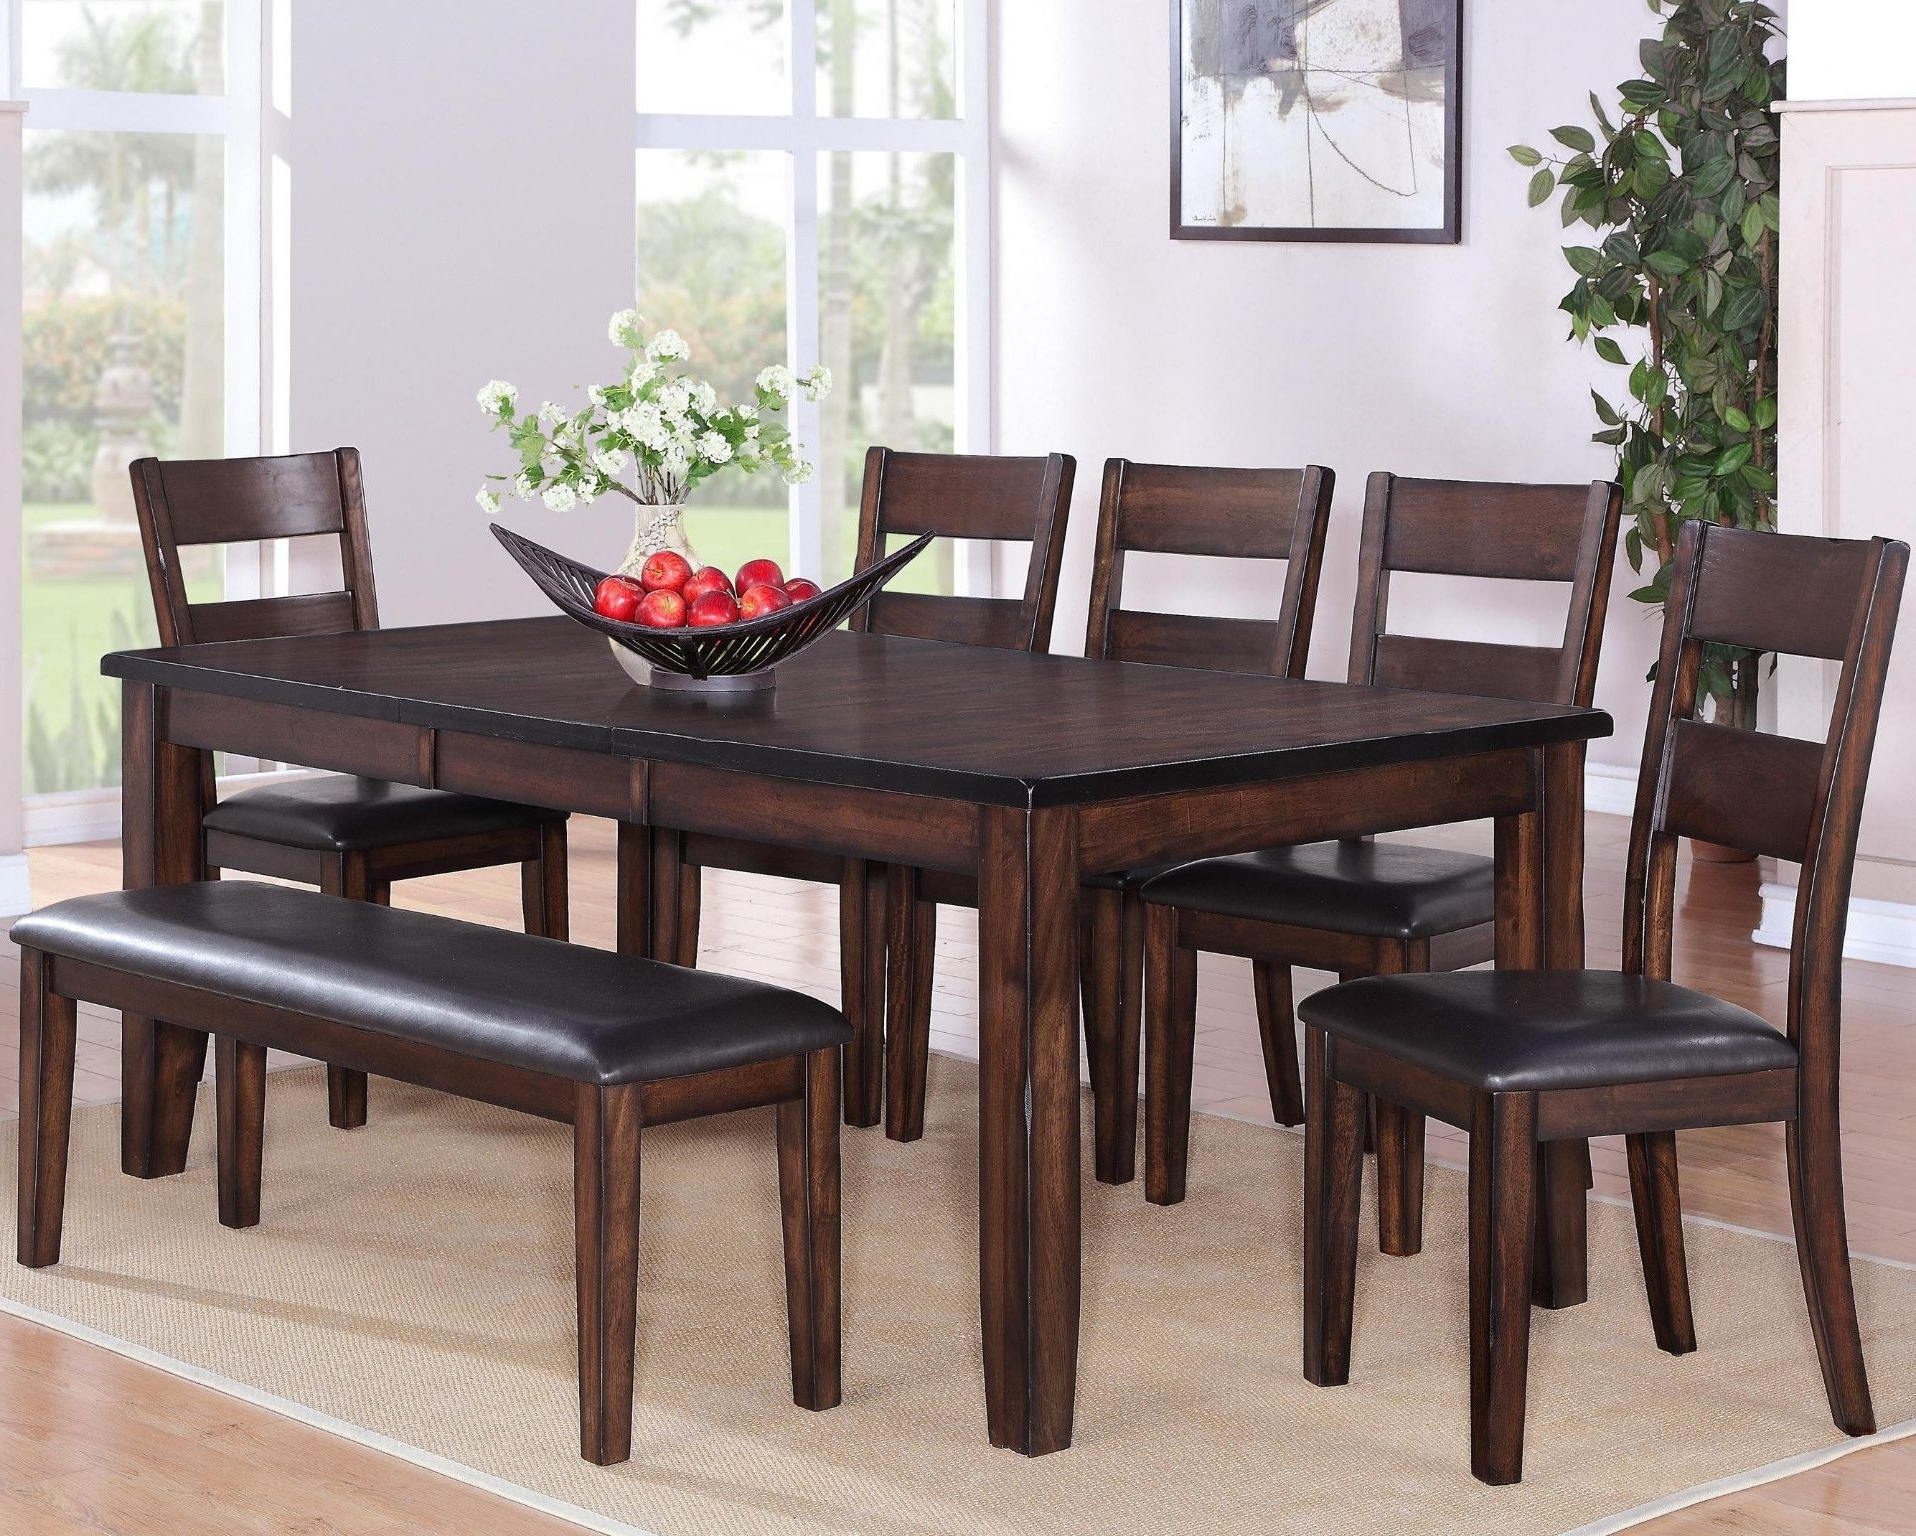 Maldives 5 Piece Dinette Table And 4 Chairs $699.00 Table $459.00 42 With Regard To Fashionable Craftsman 7 Piece Rectangular Extension Dining Sets With Arm & Uph Side Chairs (Gallery 3 of 25)